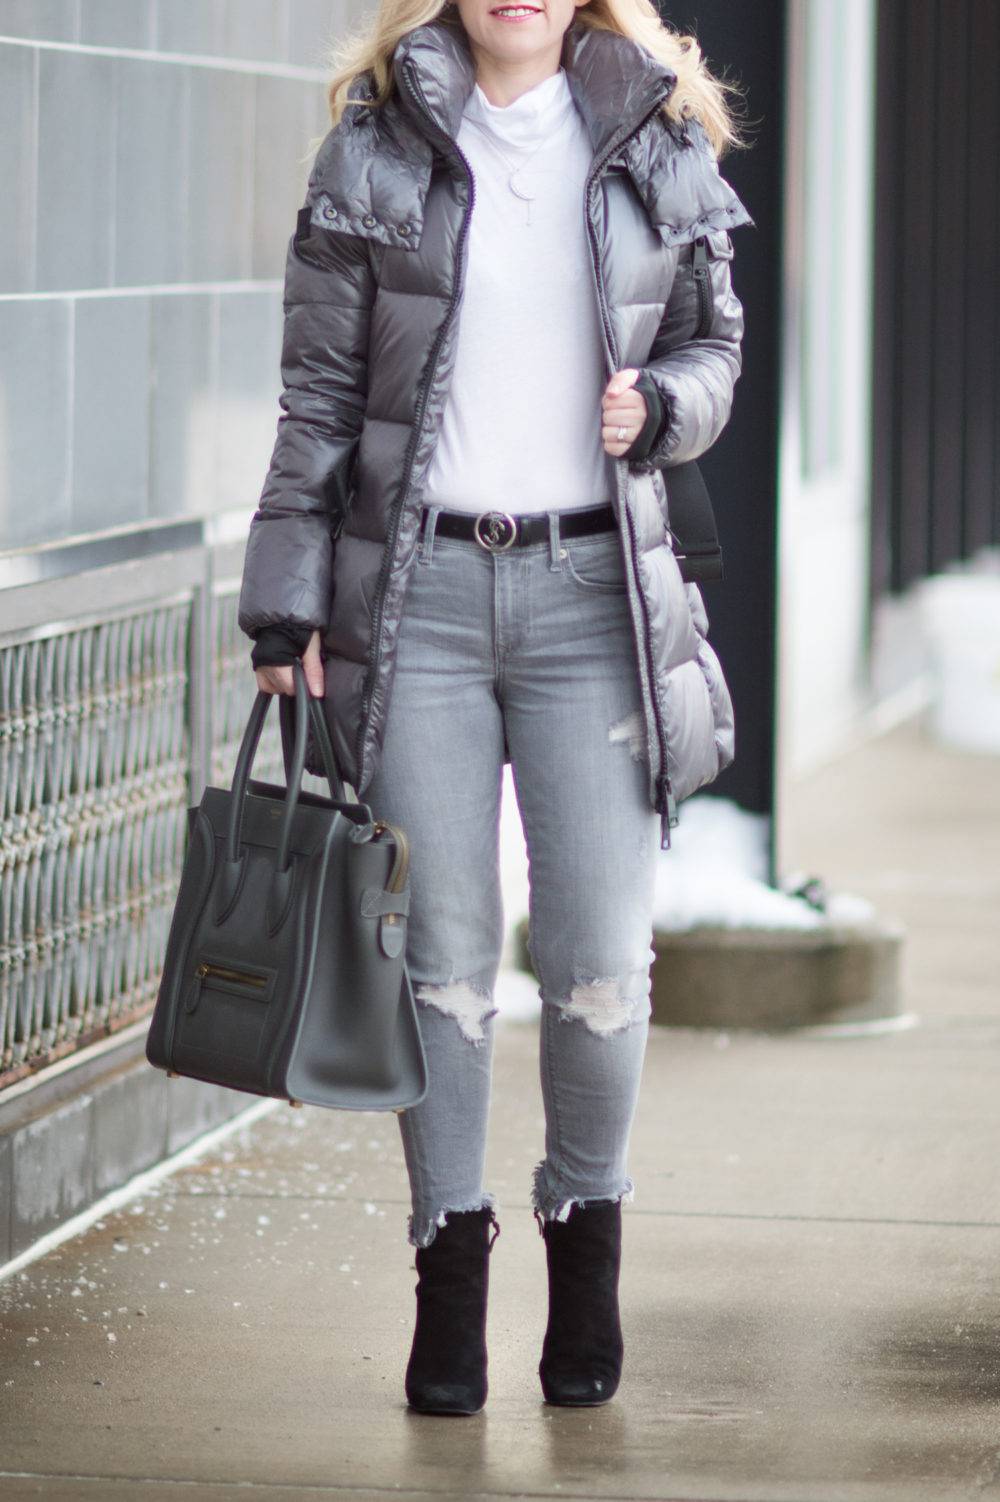 Fashion for Petite Women | SAM New Soho Down Coat | Express Gray Mid Rise Destroyed Ankle Jeans | Celine Luggage Tote | Click to Read More...